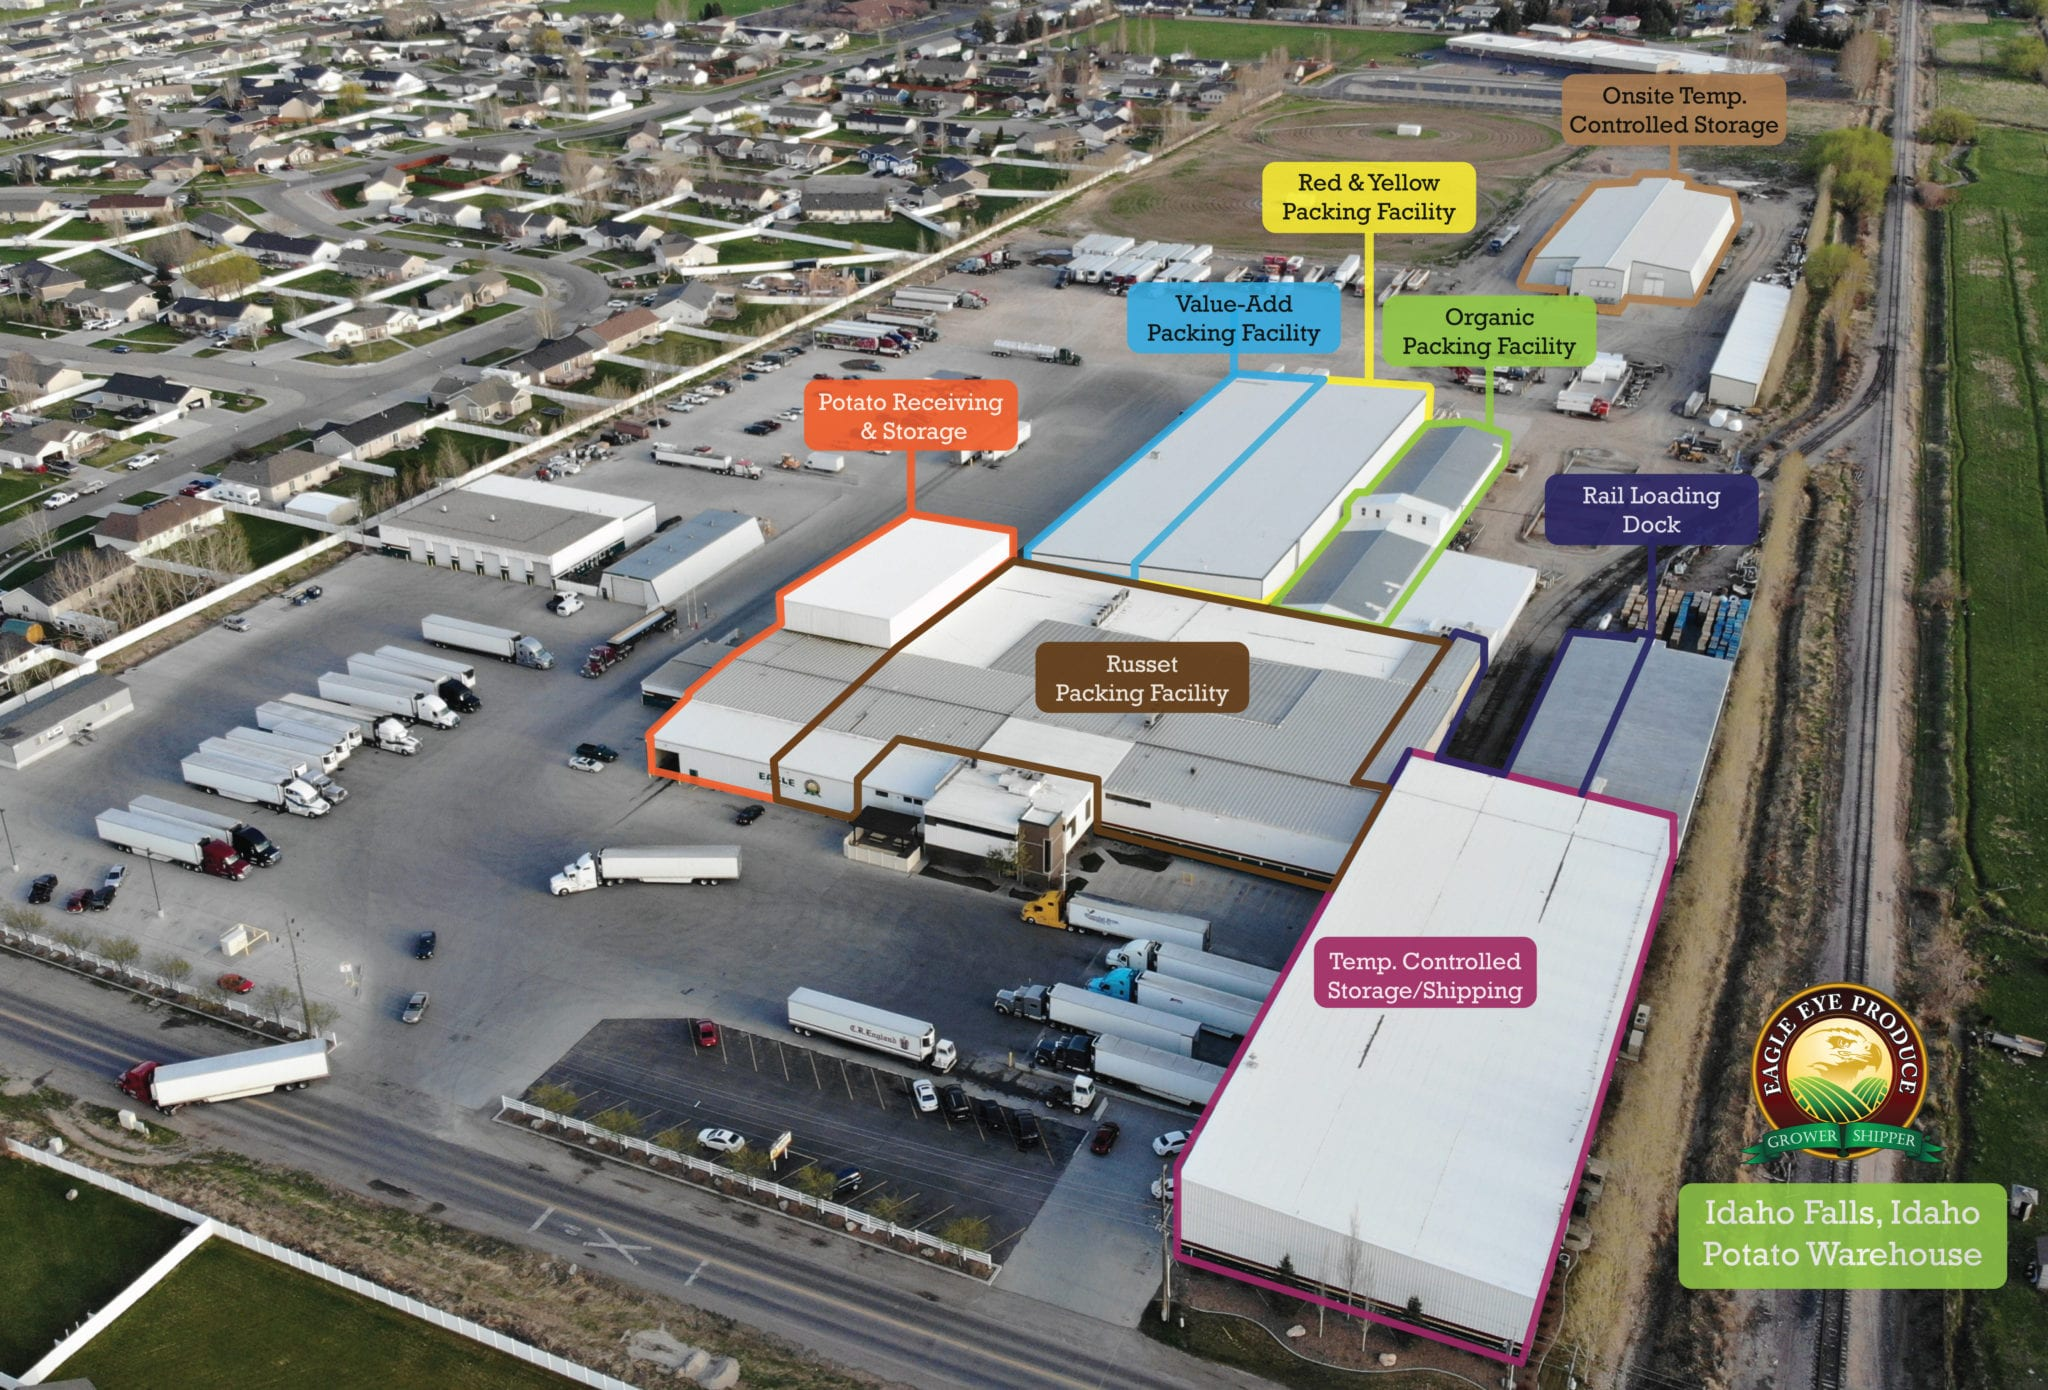 Eagle Eye Produce Idaho Facility